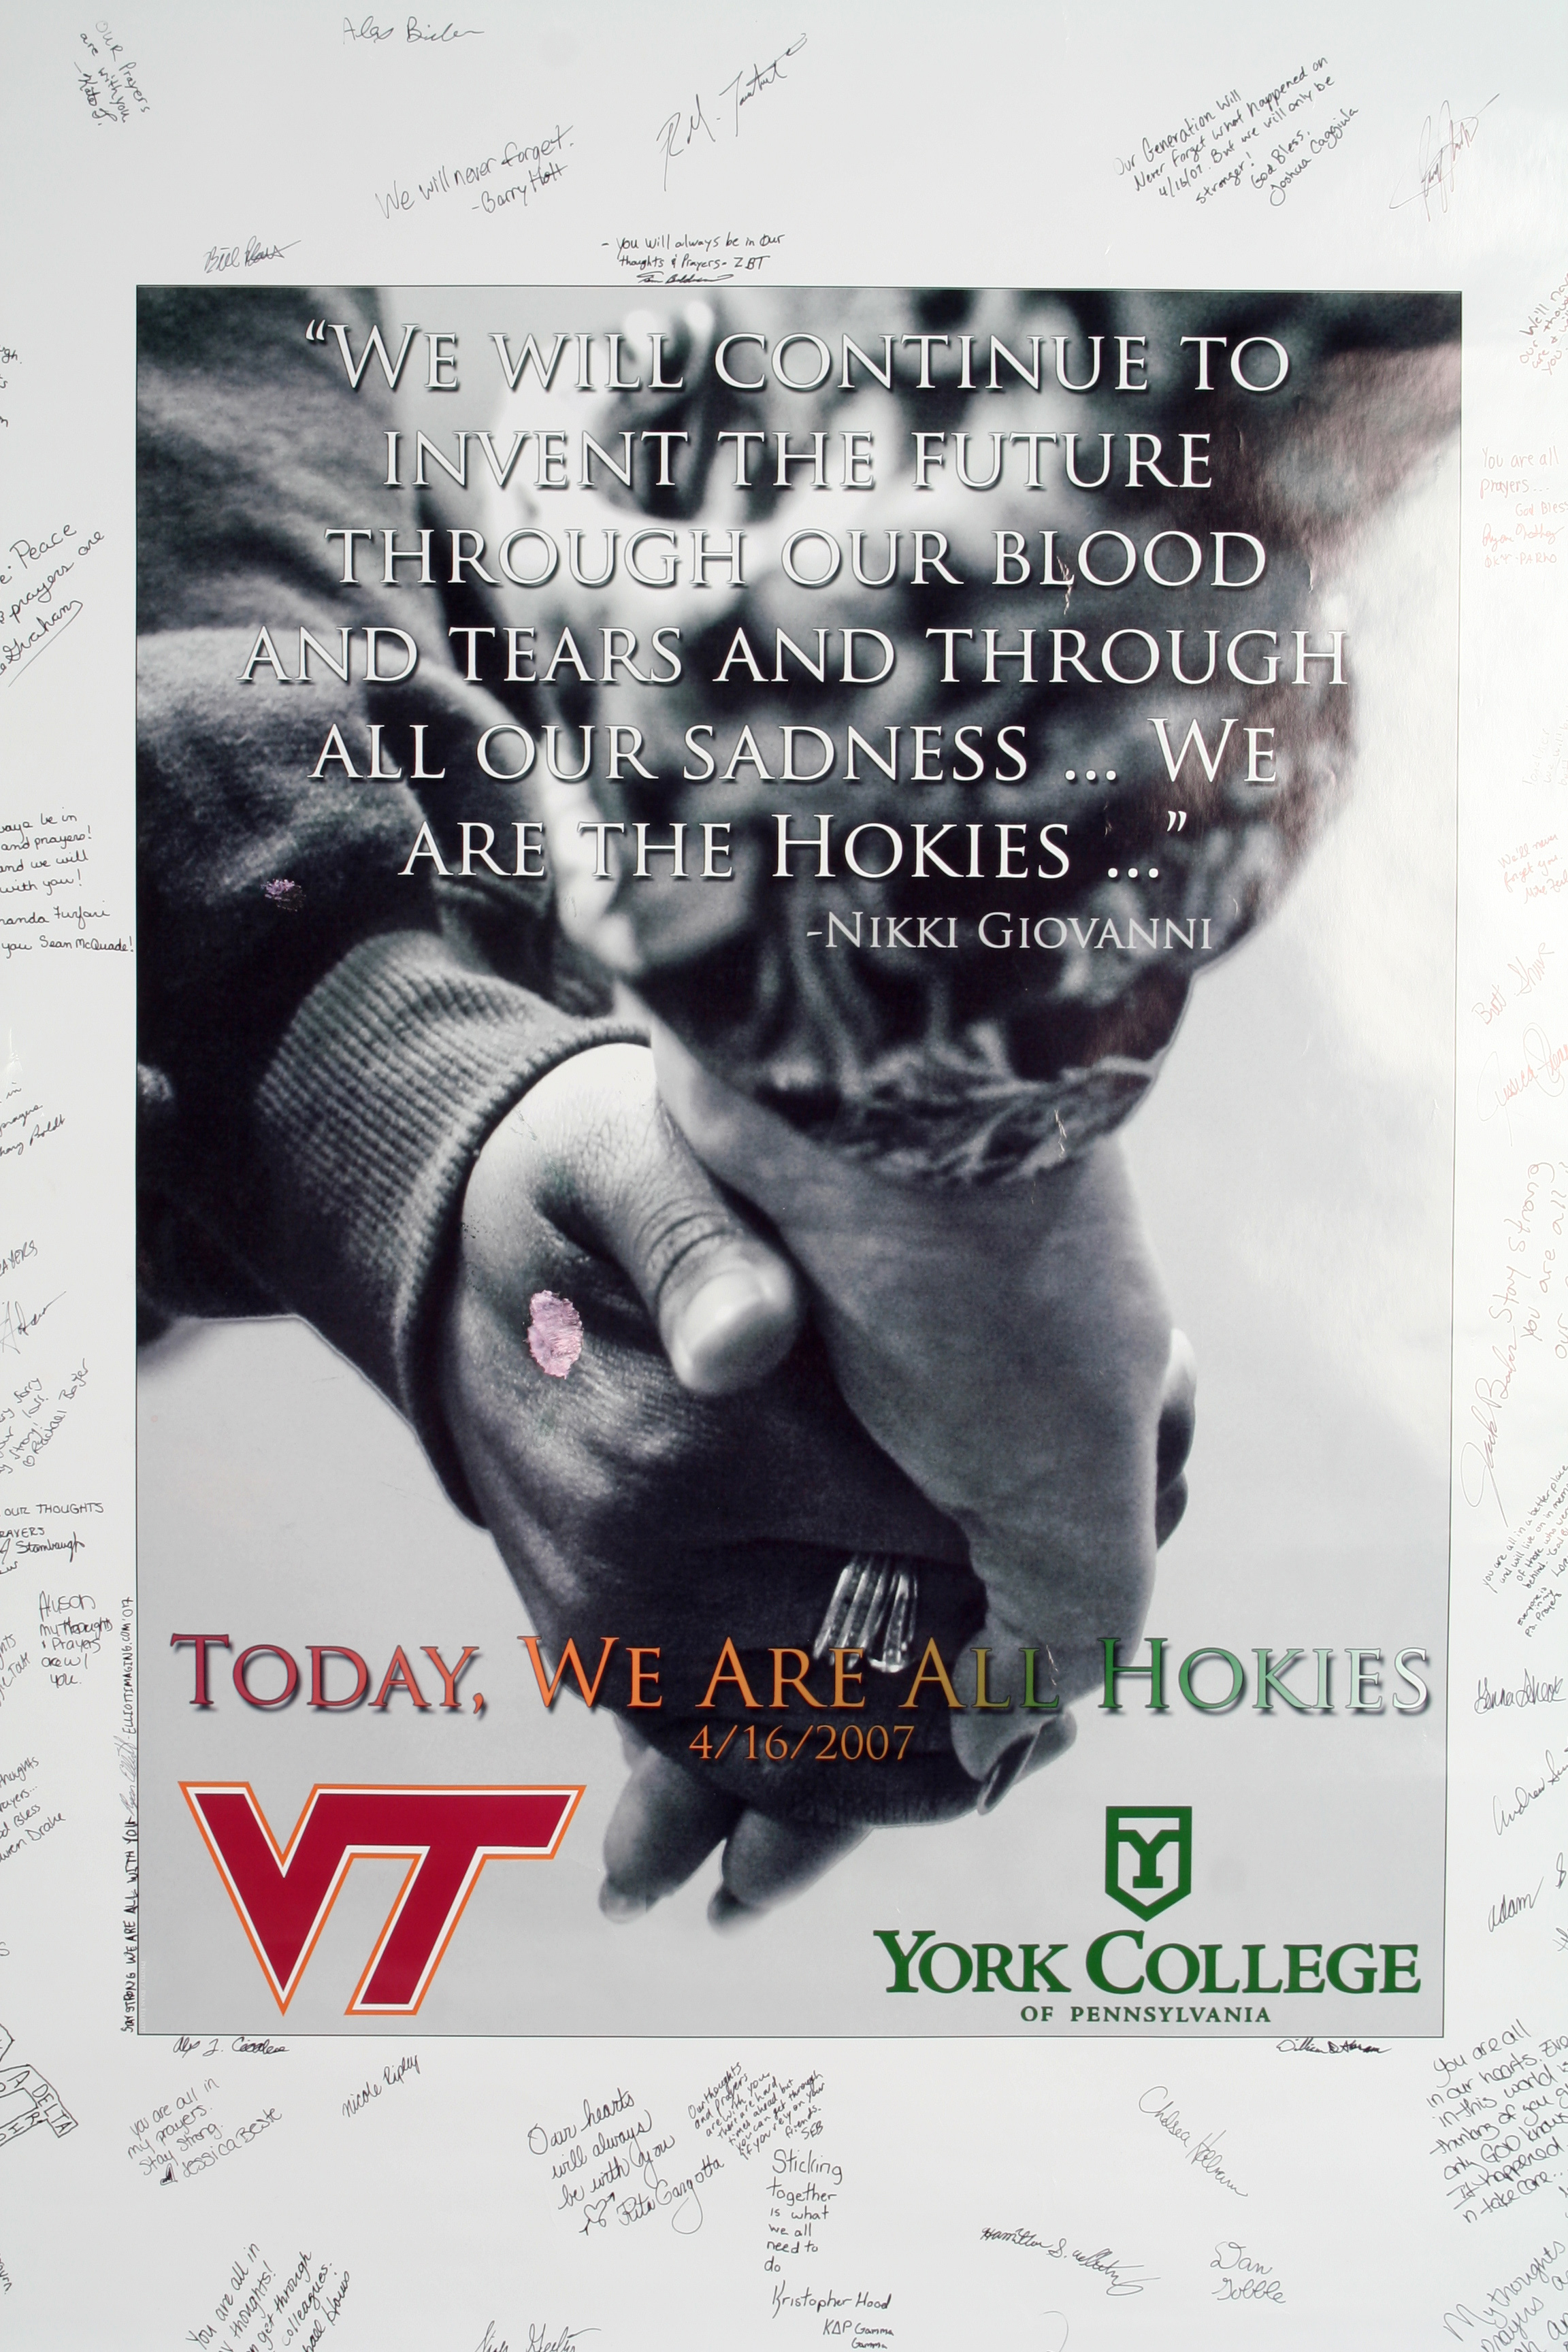 Vet Tech Quotes Poster From York College Features Quote From Nikki Giovanni's Poem